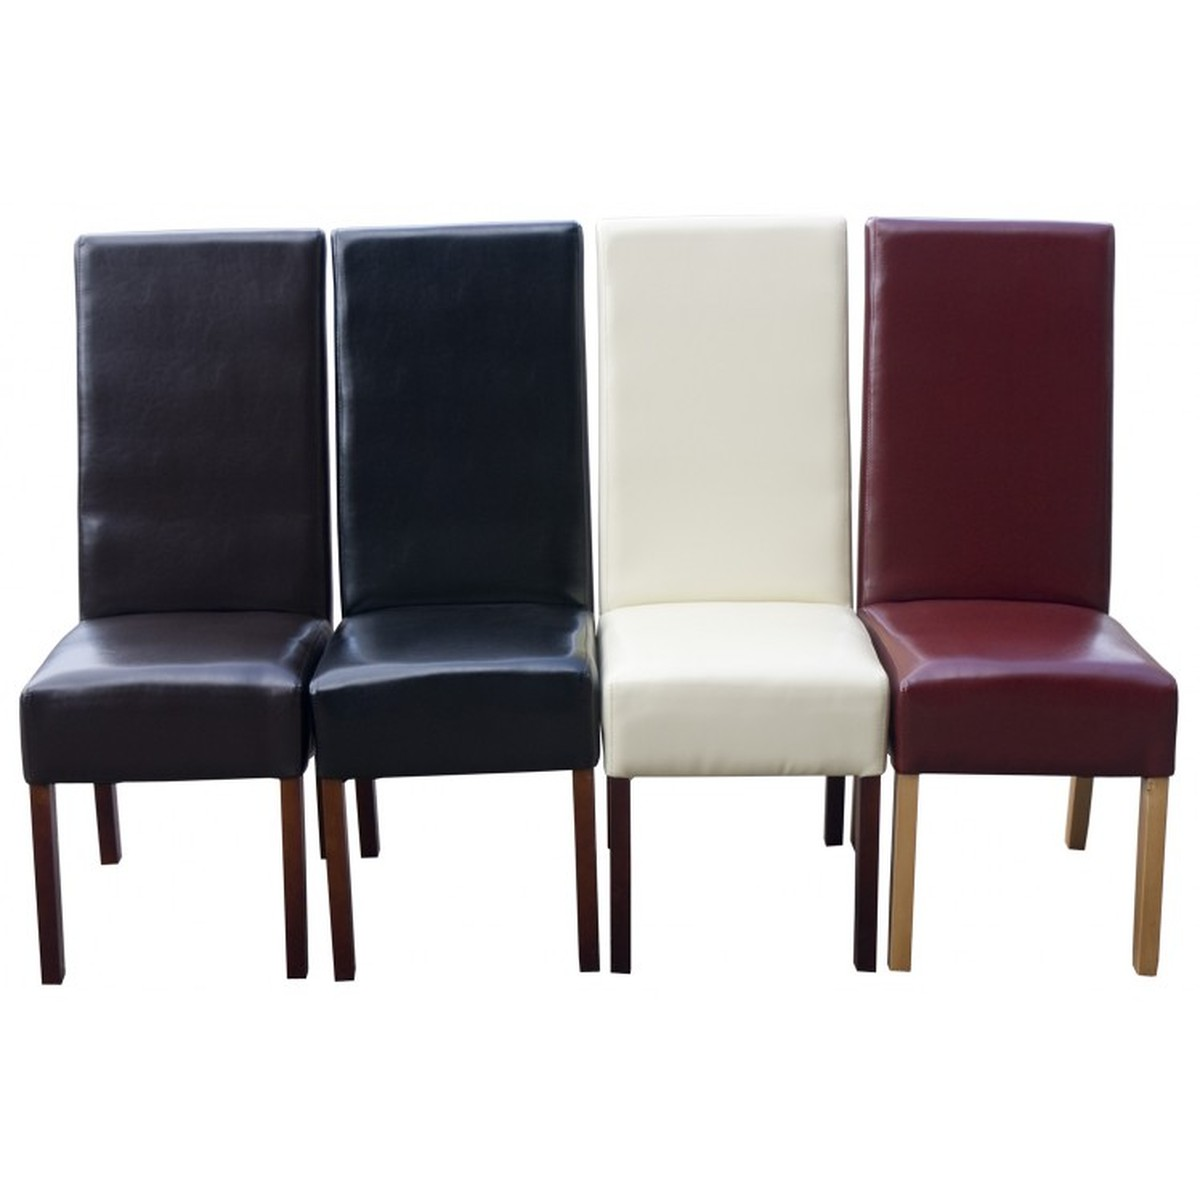 Secondhand hotel furniture dining chairs special offer for Leather kitchen chairs for sale